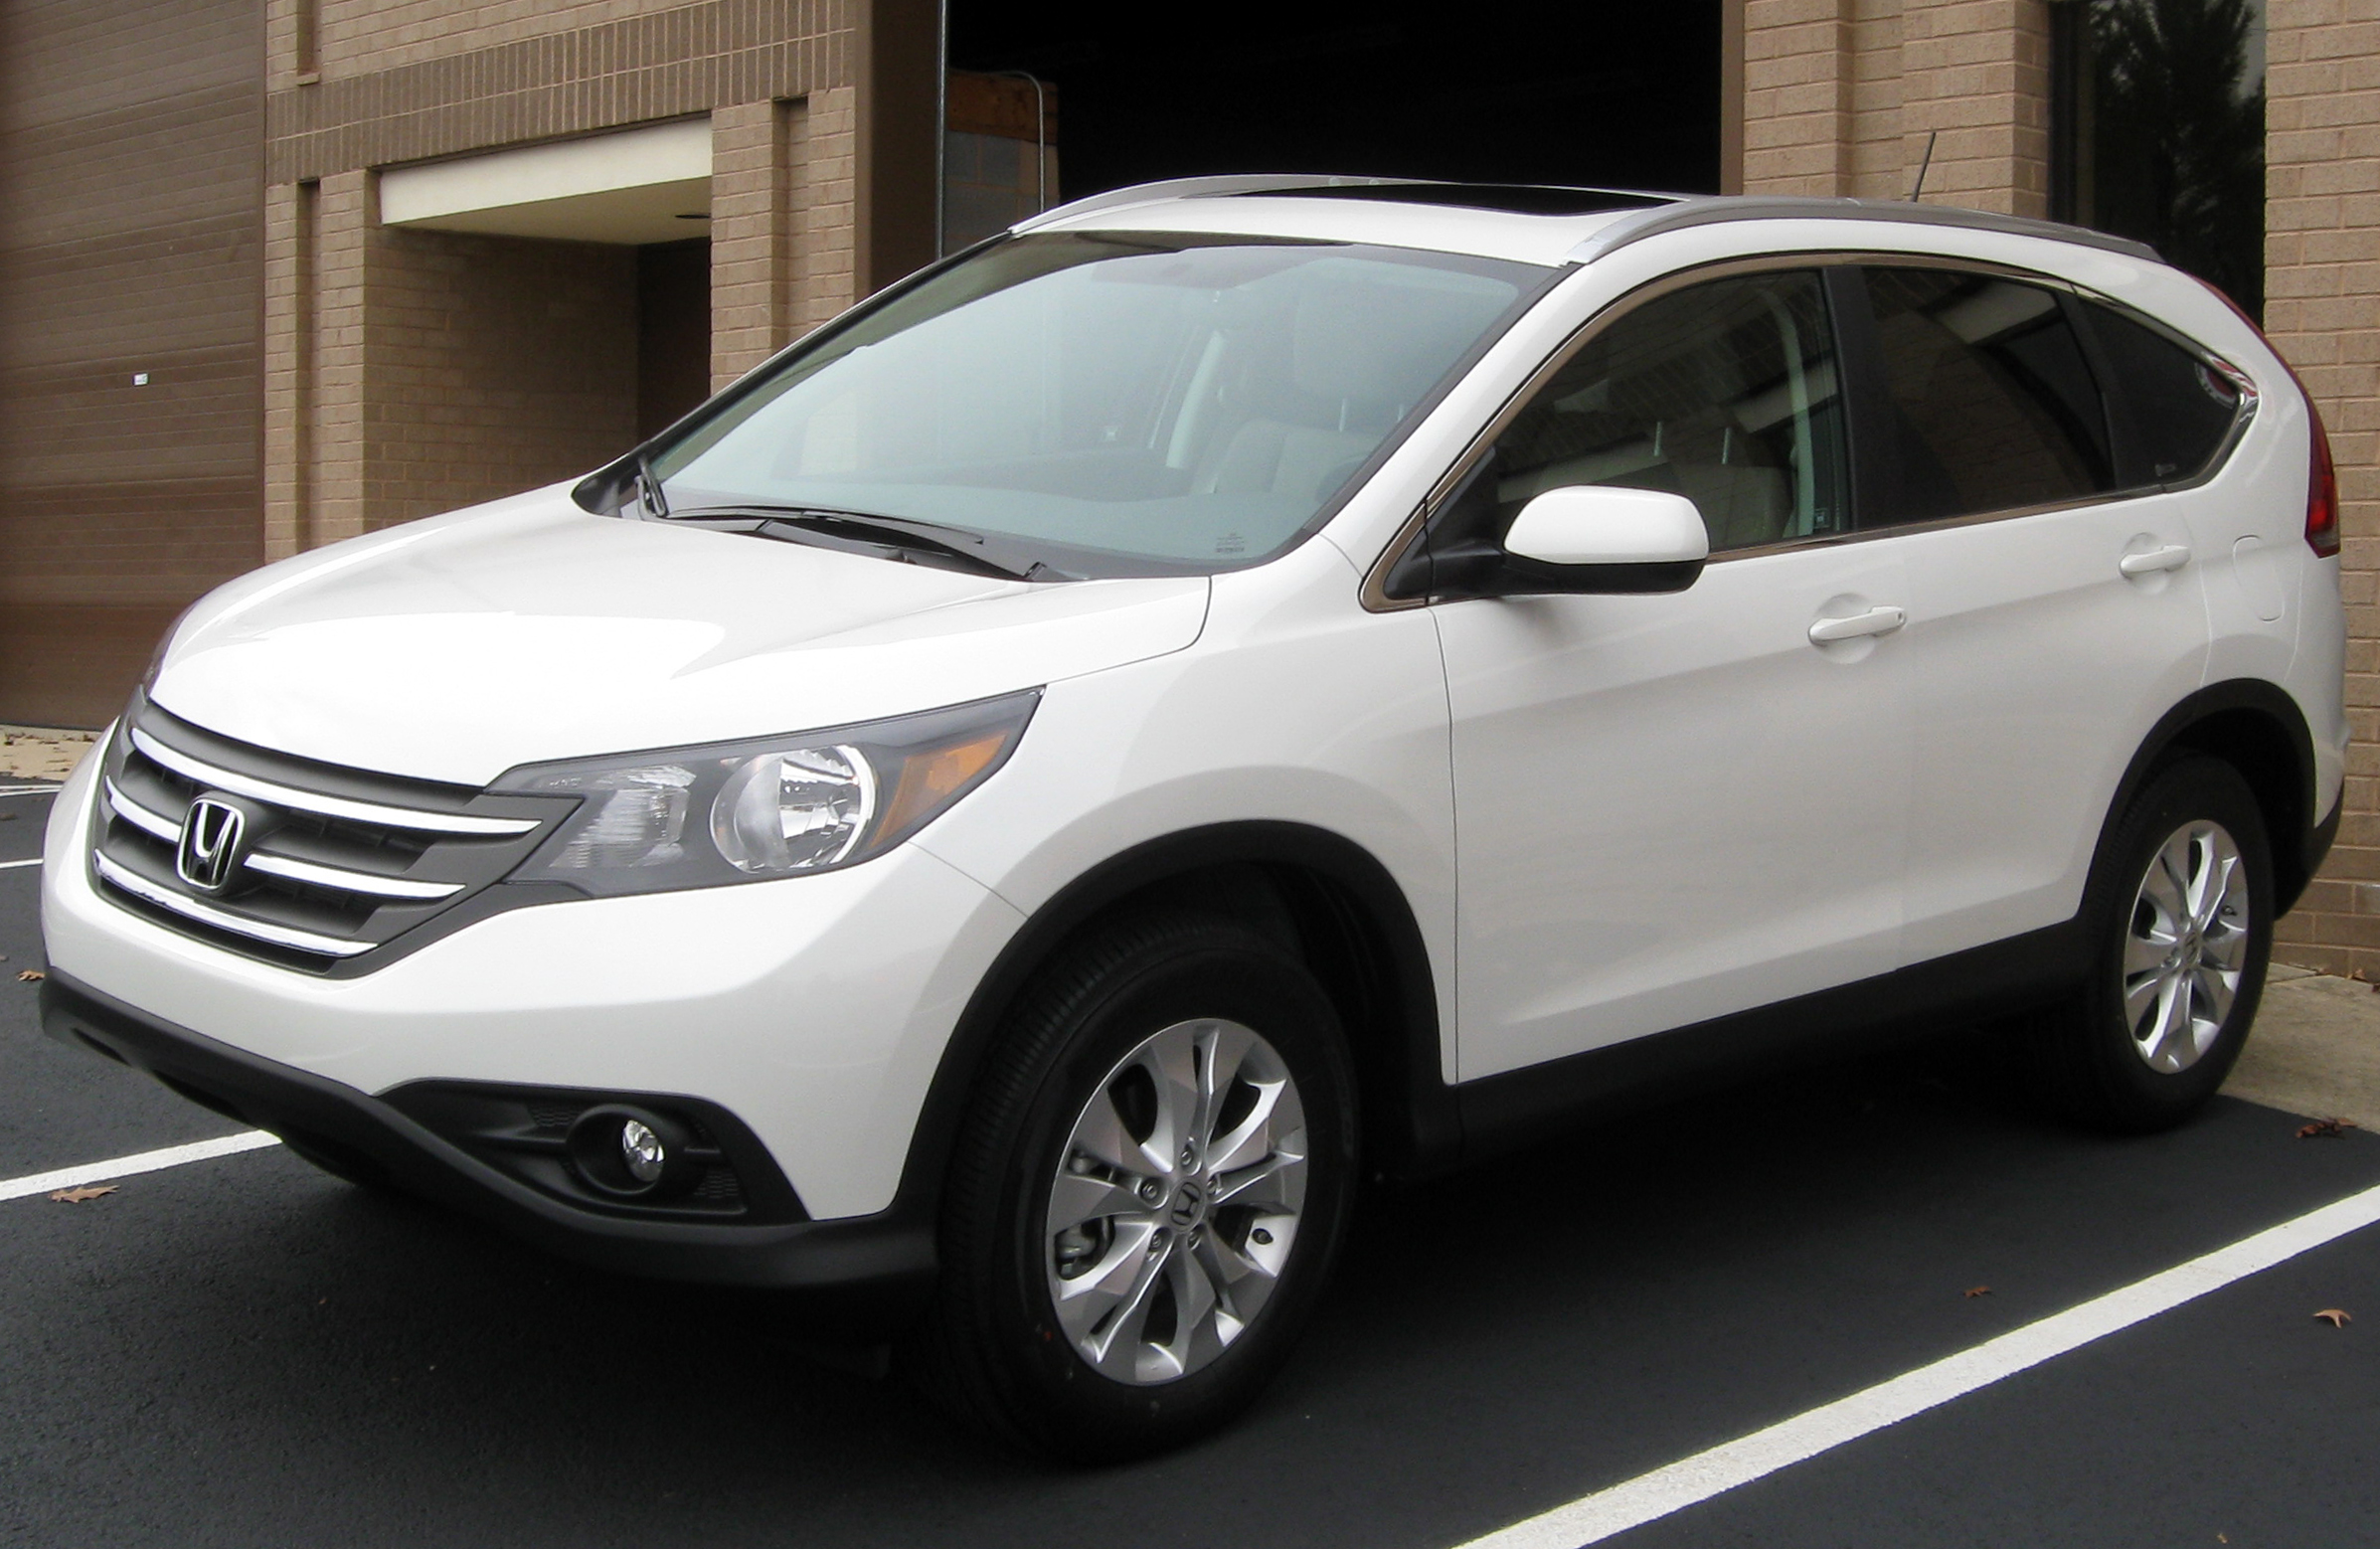 2018 Honda Accord Wiki >> File:2012 Honda CR-V -- 12-29-2011.jpg - Wikimedia Commons